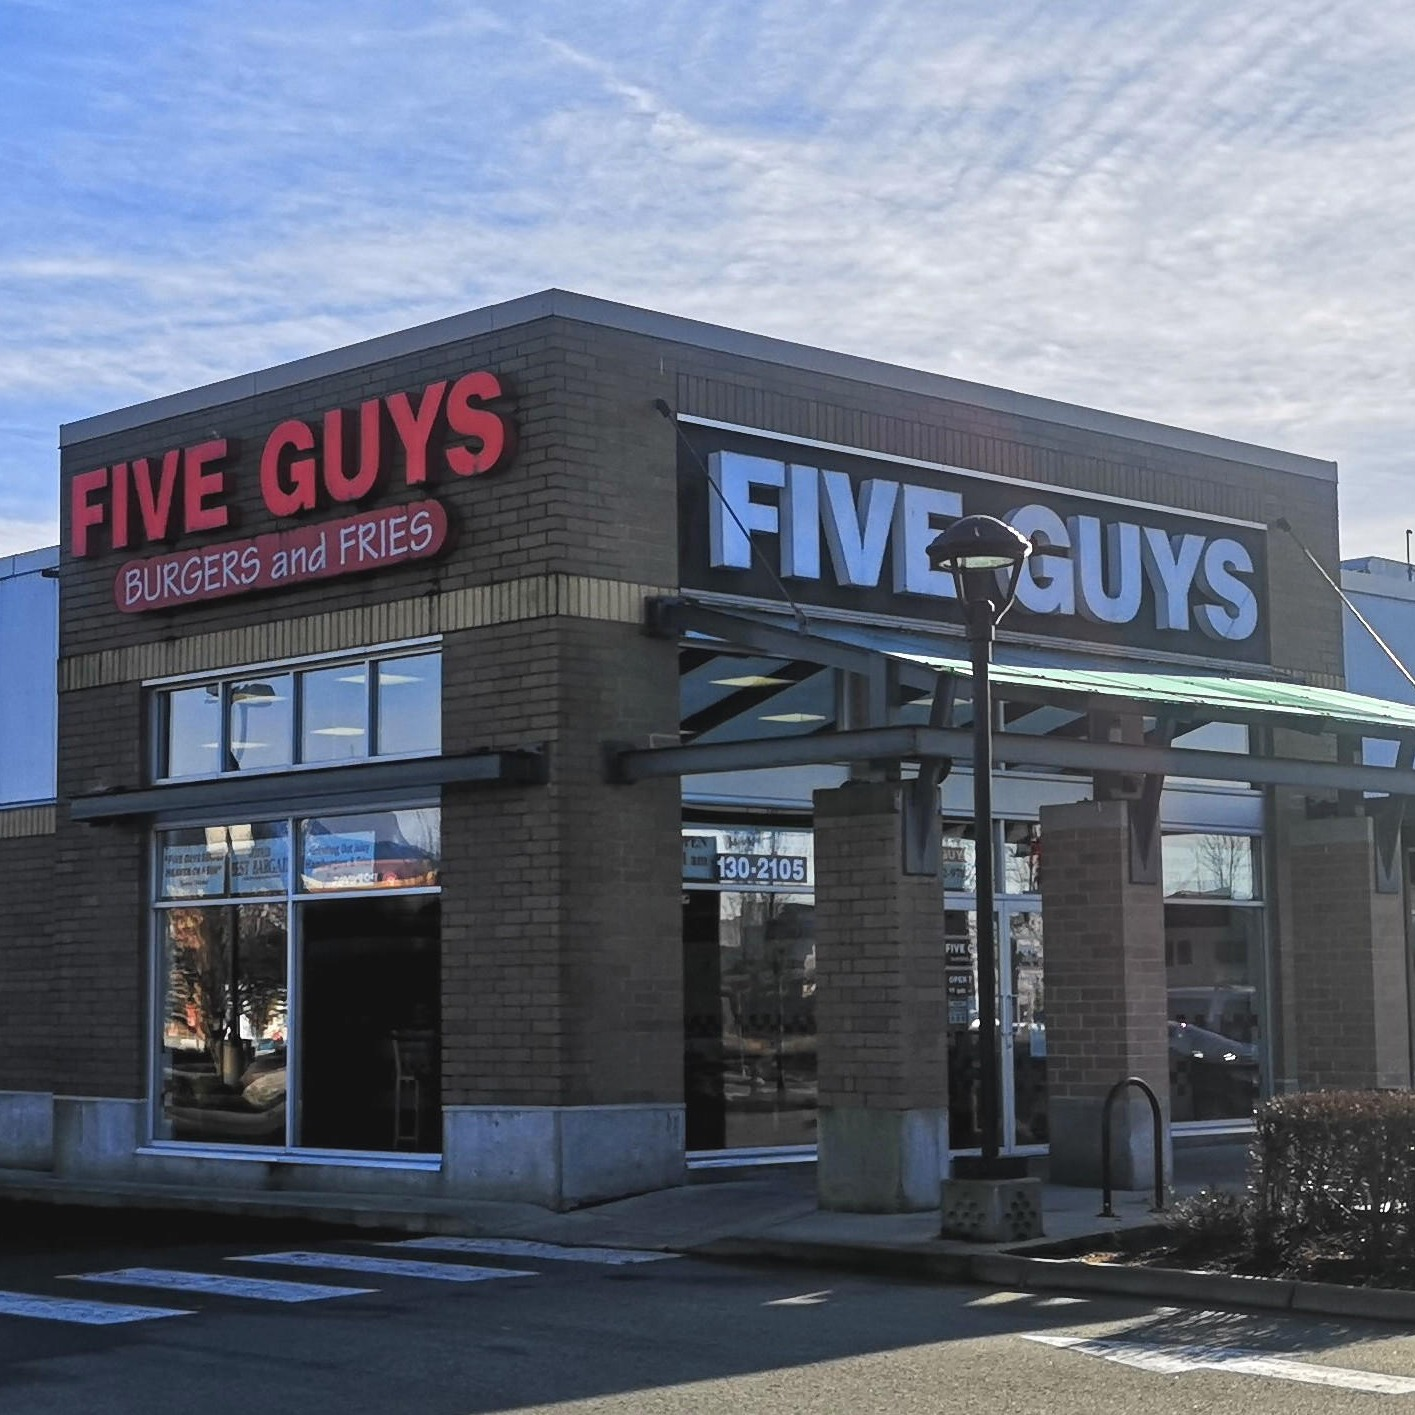 Five Guys at 130-2105 Hawkins Street in Port Coquitlam.